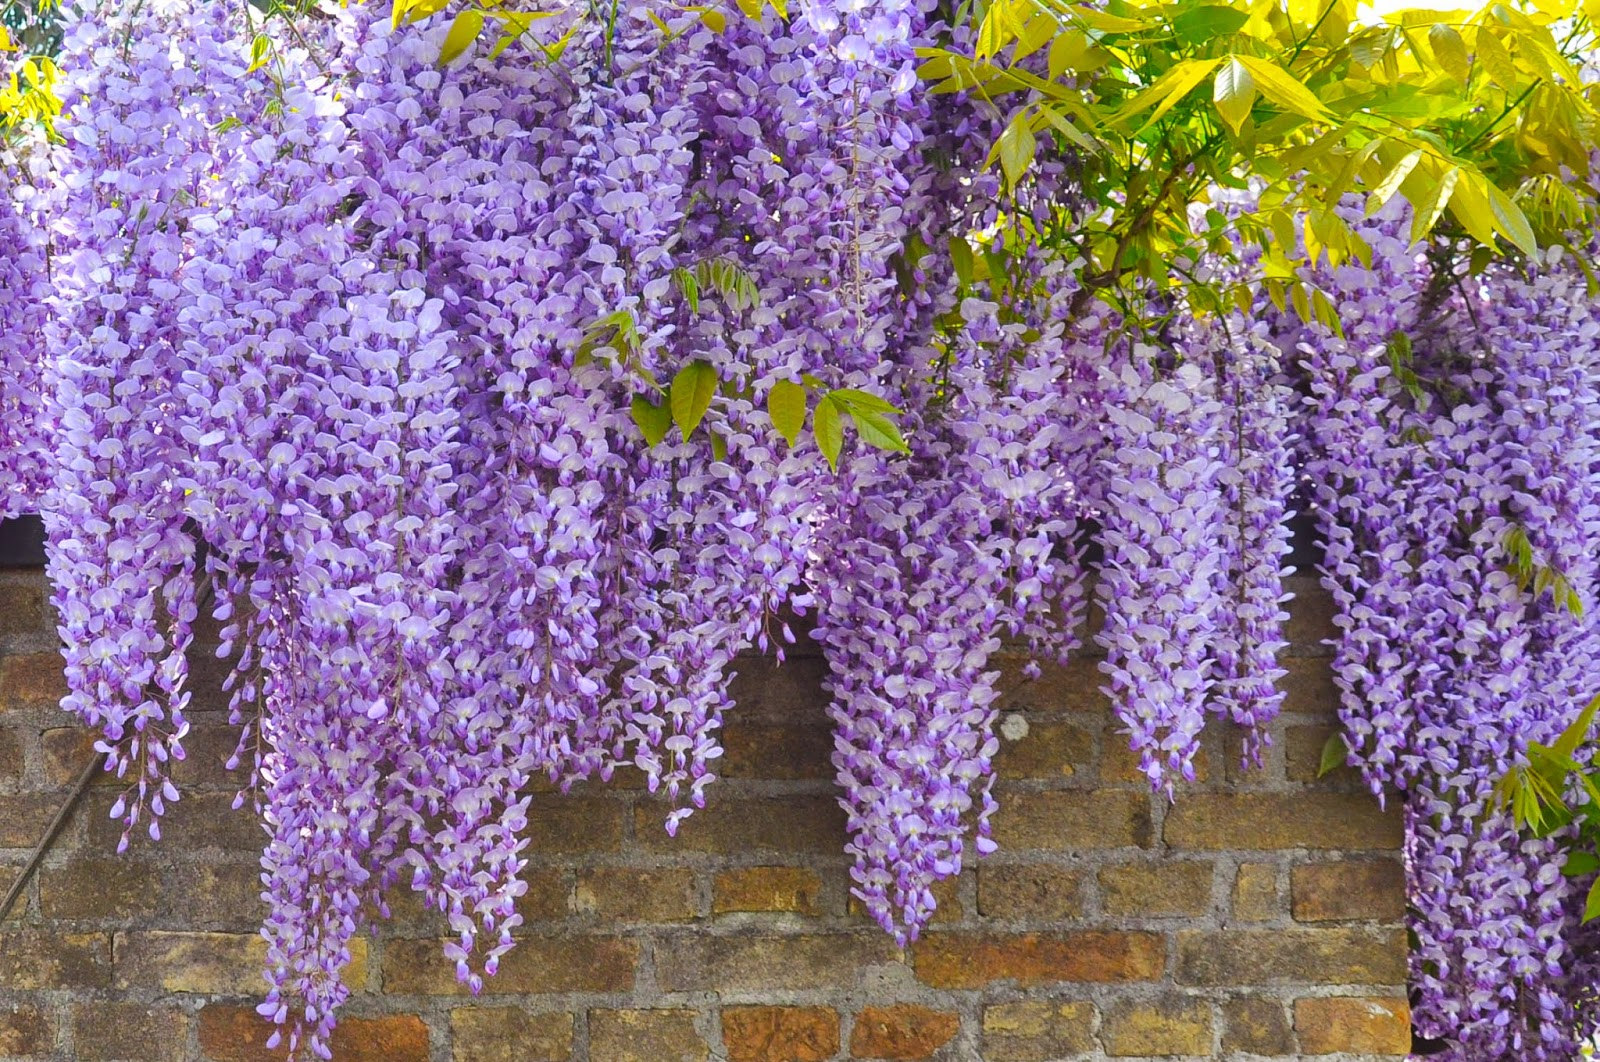 Flowering wisteria, Wisteria in full bloom